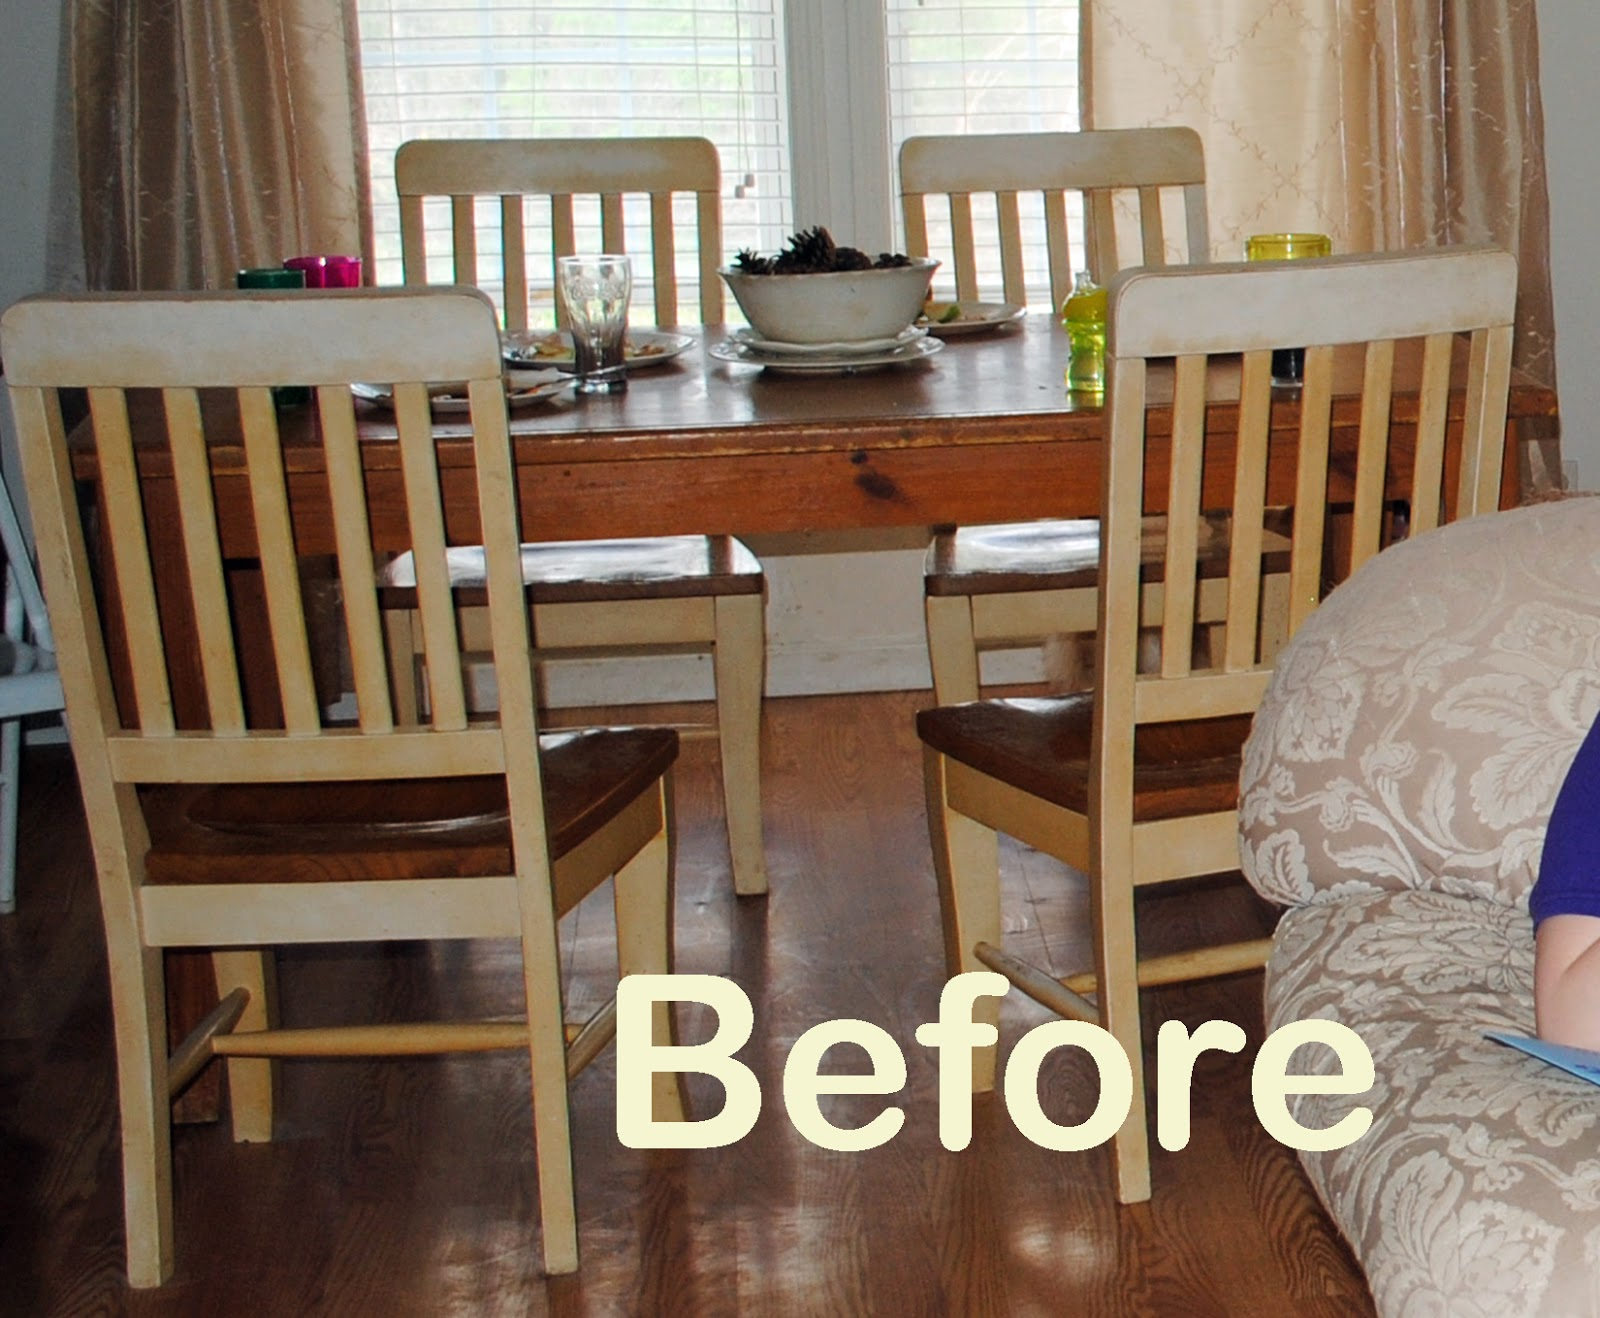 Runs with scraps refinish an old knotty pine dining table the story - Refinishing a kitchen table ...